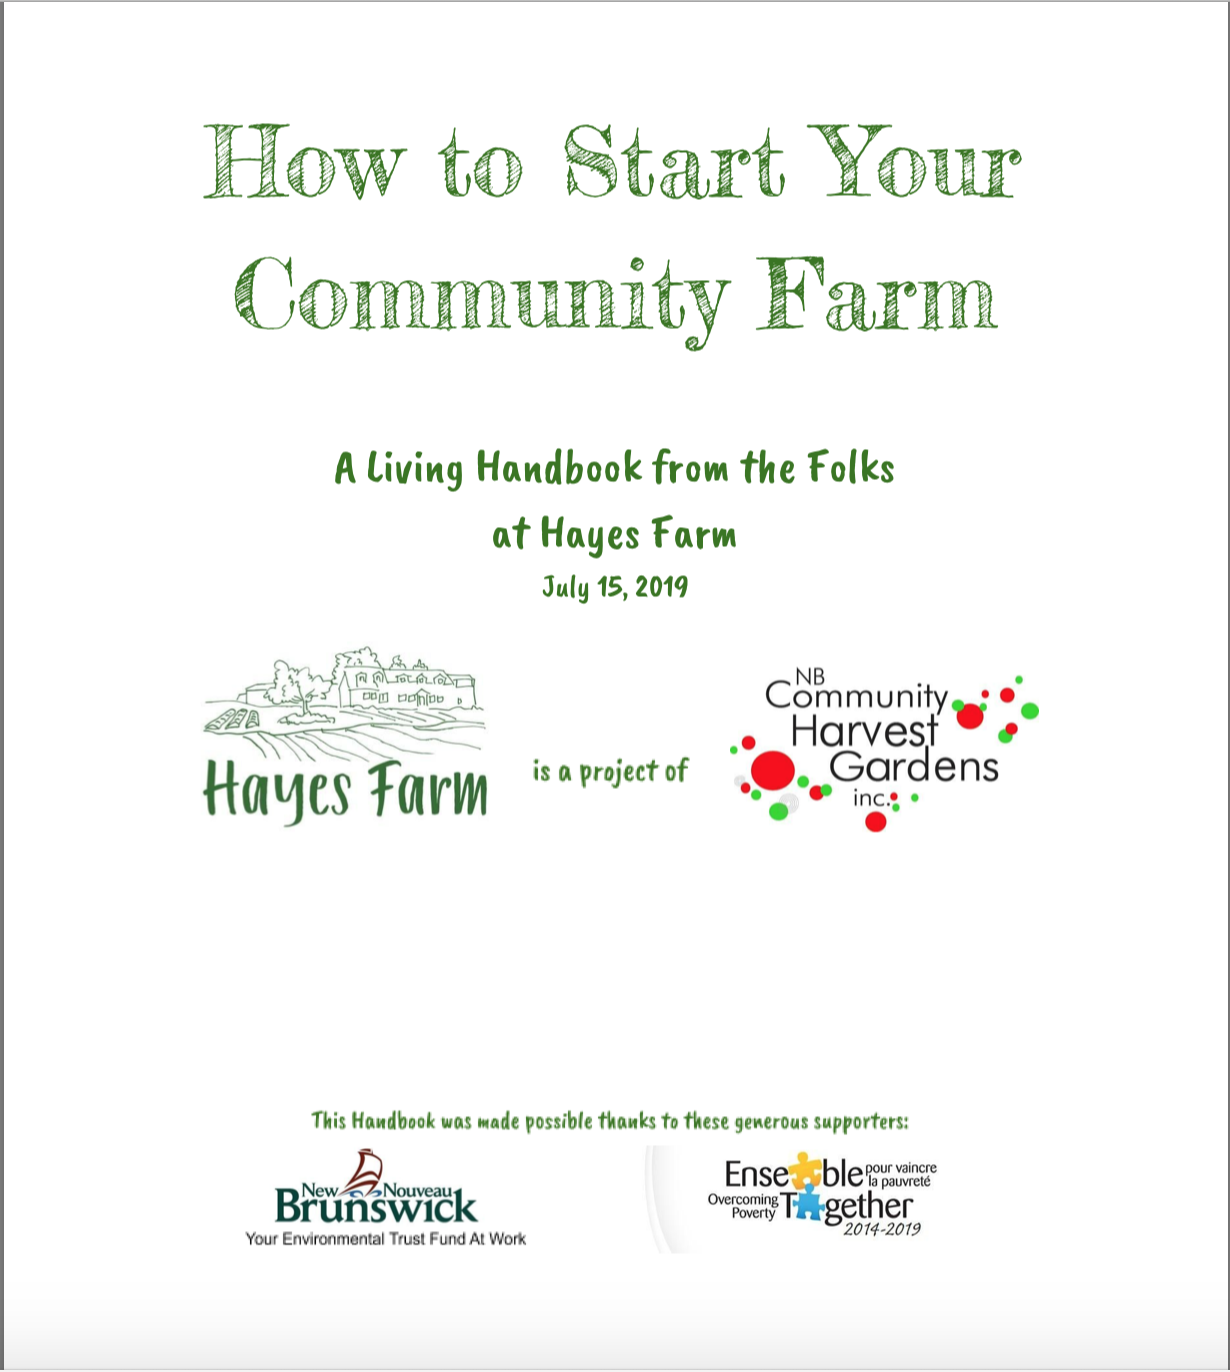 How to Start Your Community Farm: A Living Handbook from the Folks at Hayes Farm